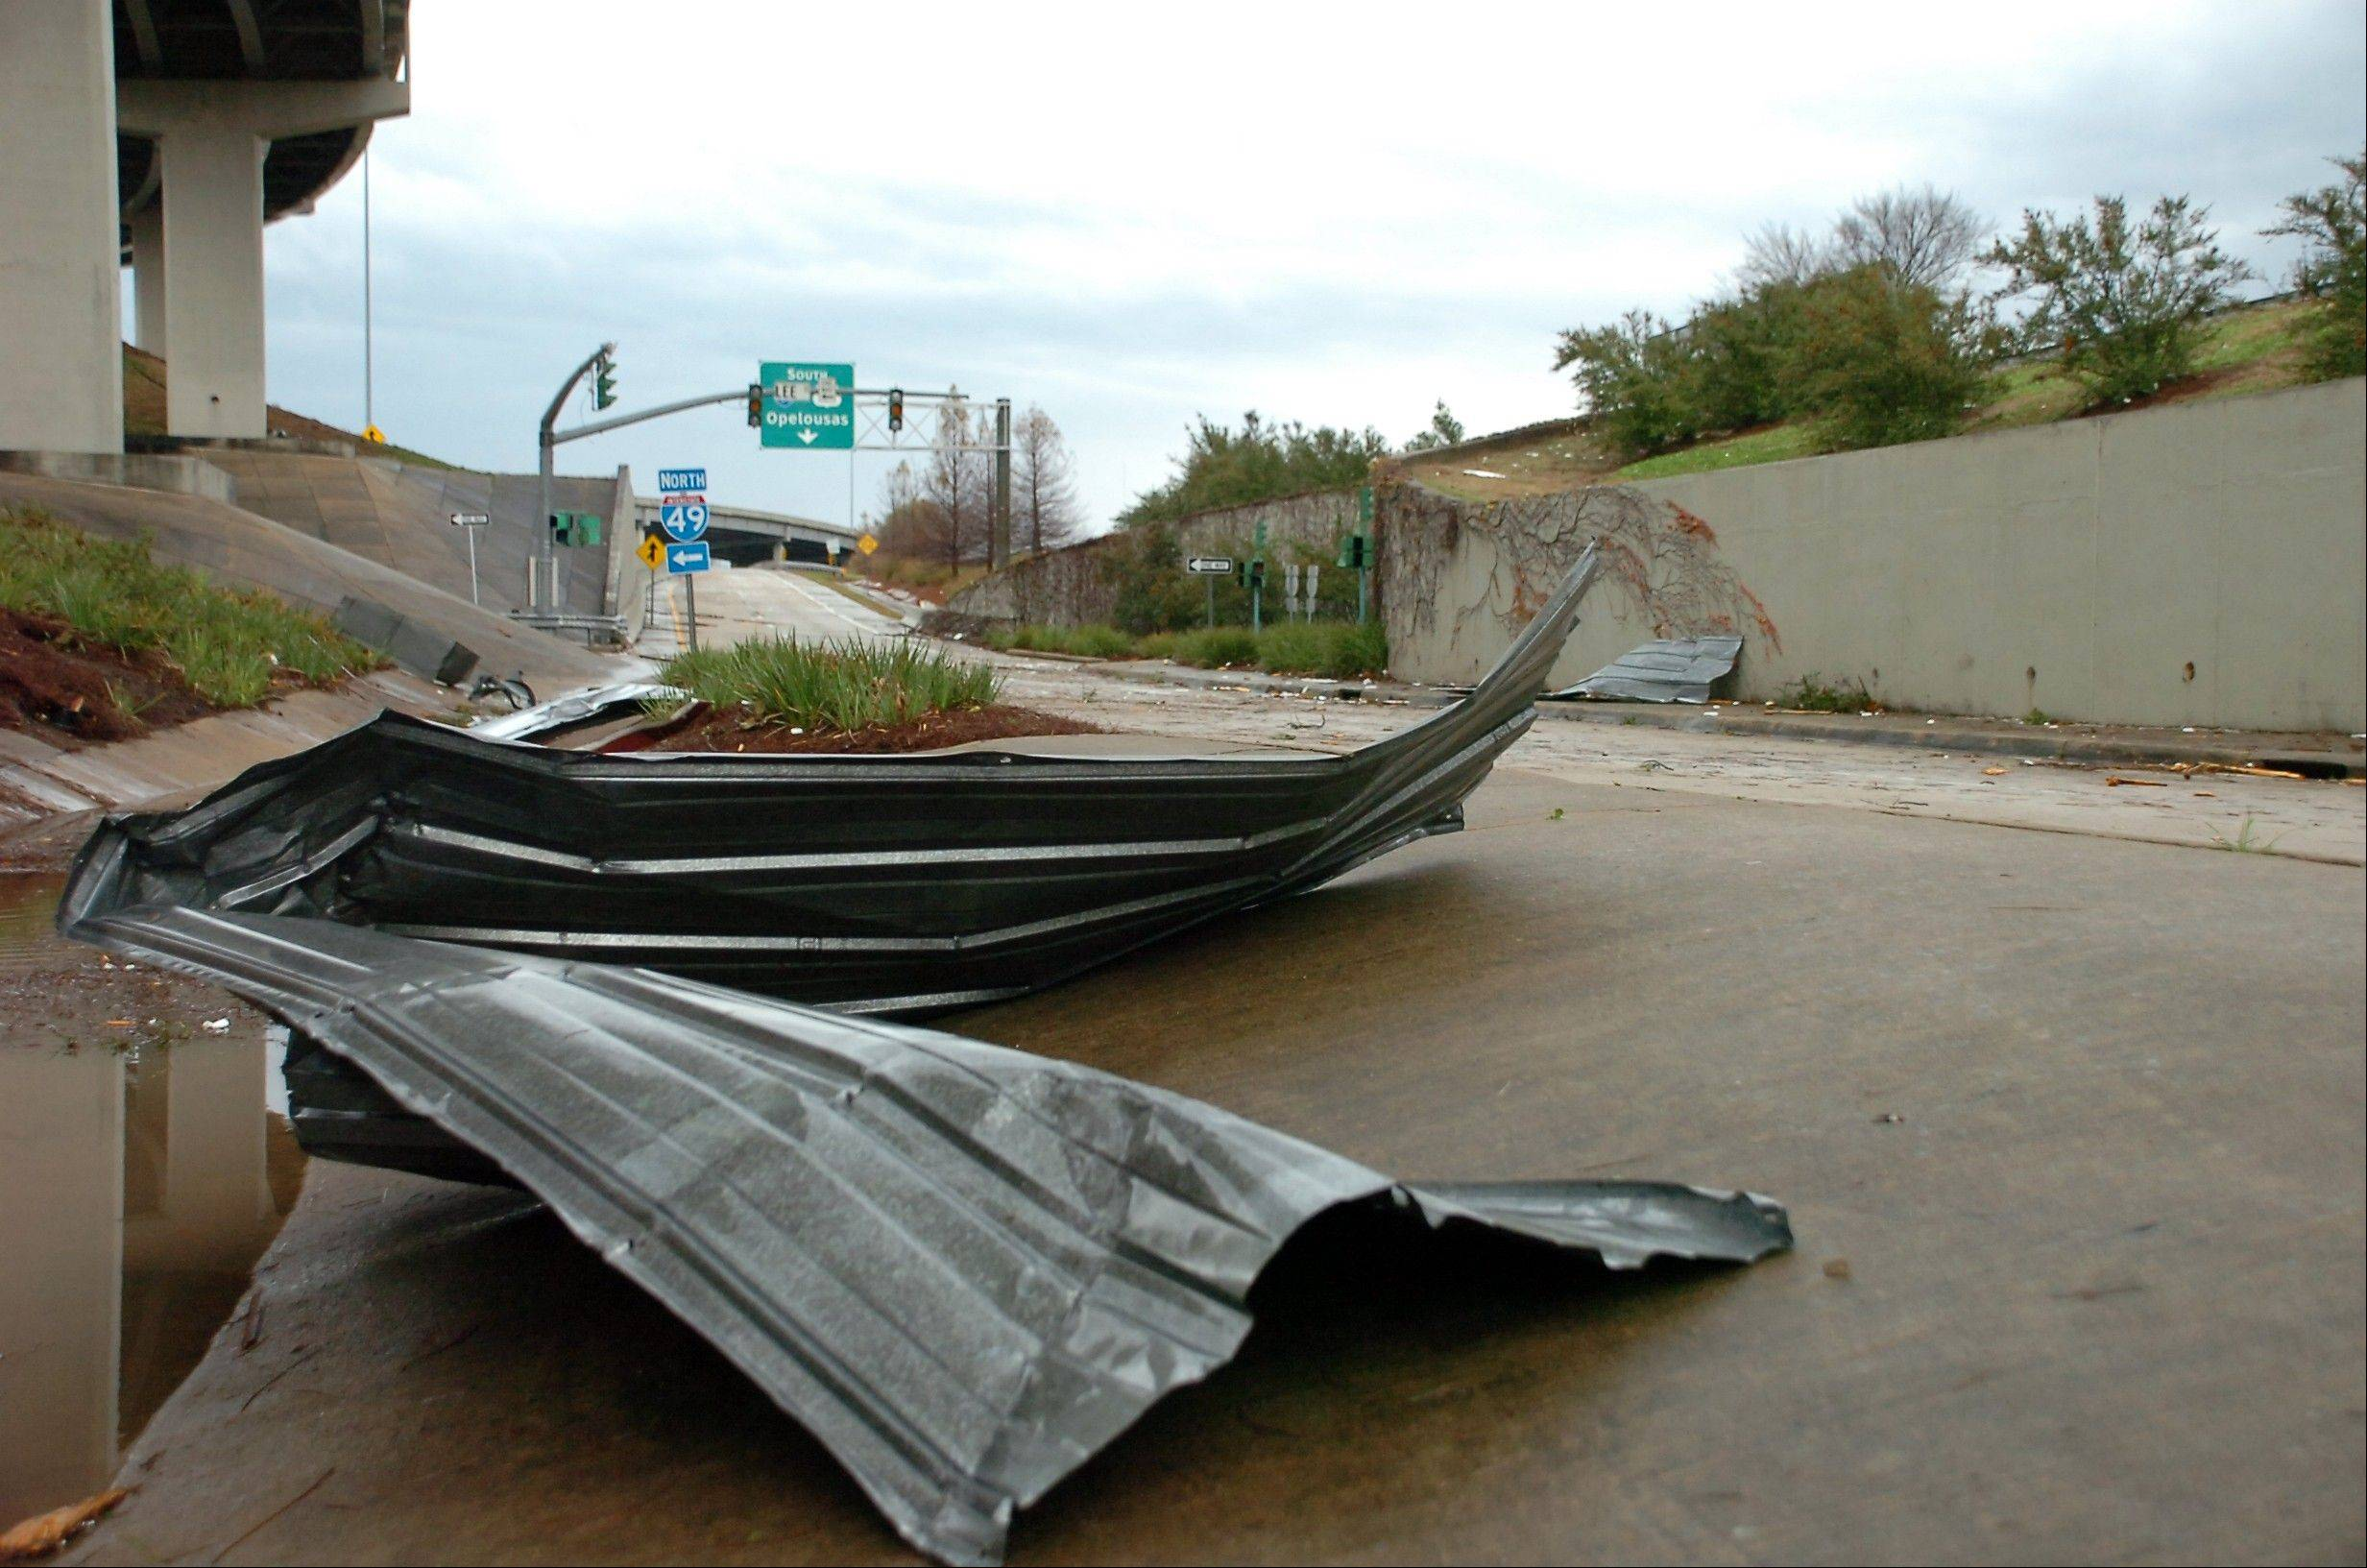 Debris sits on the frontage road near I-49 in downtown Alexandria, La., after an apparent tornado tore through the area Tuesday, Dec. 25, 2012.